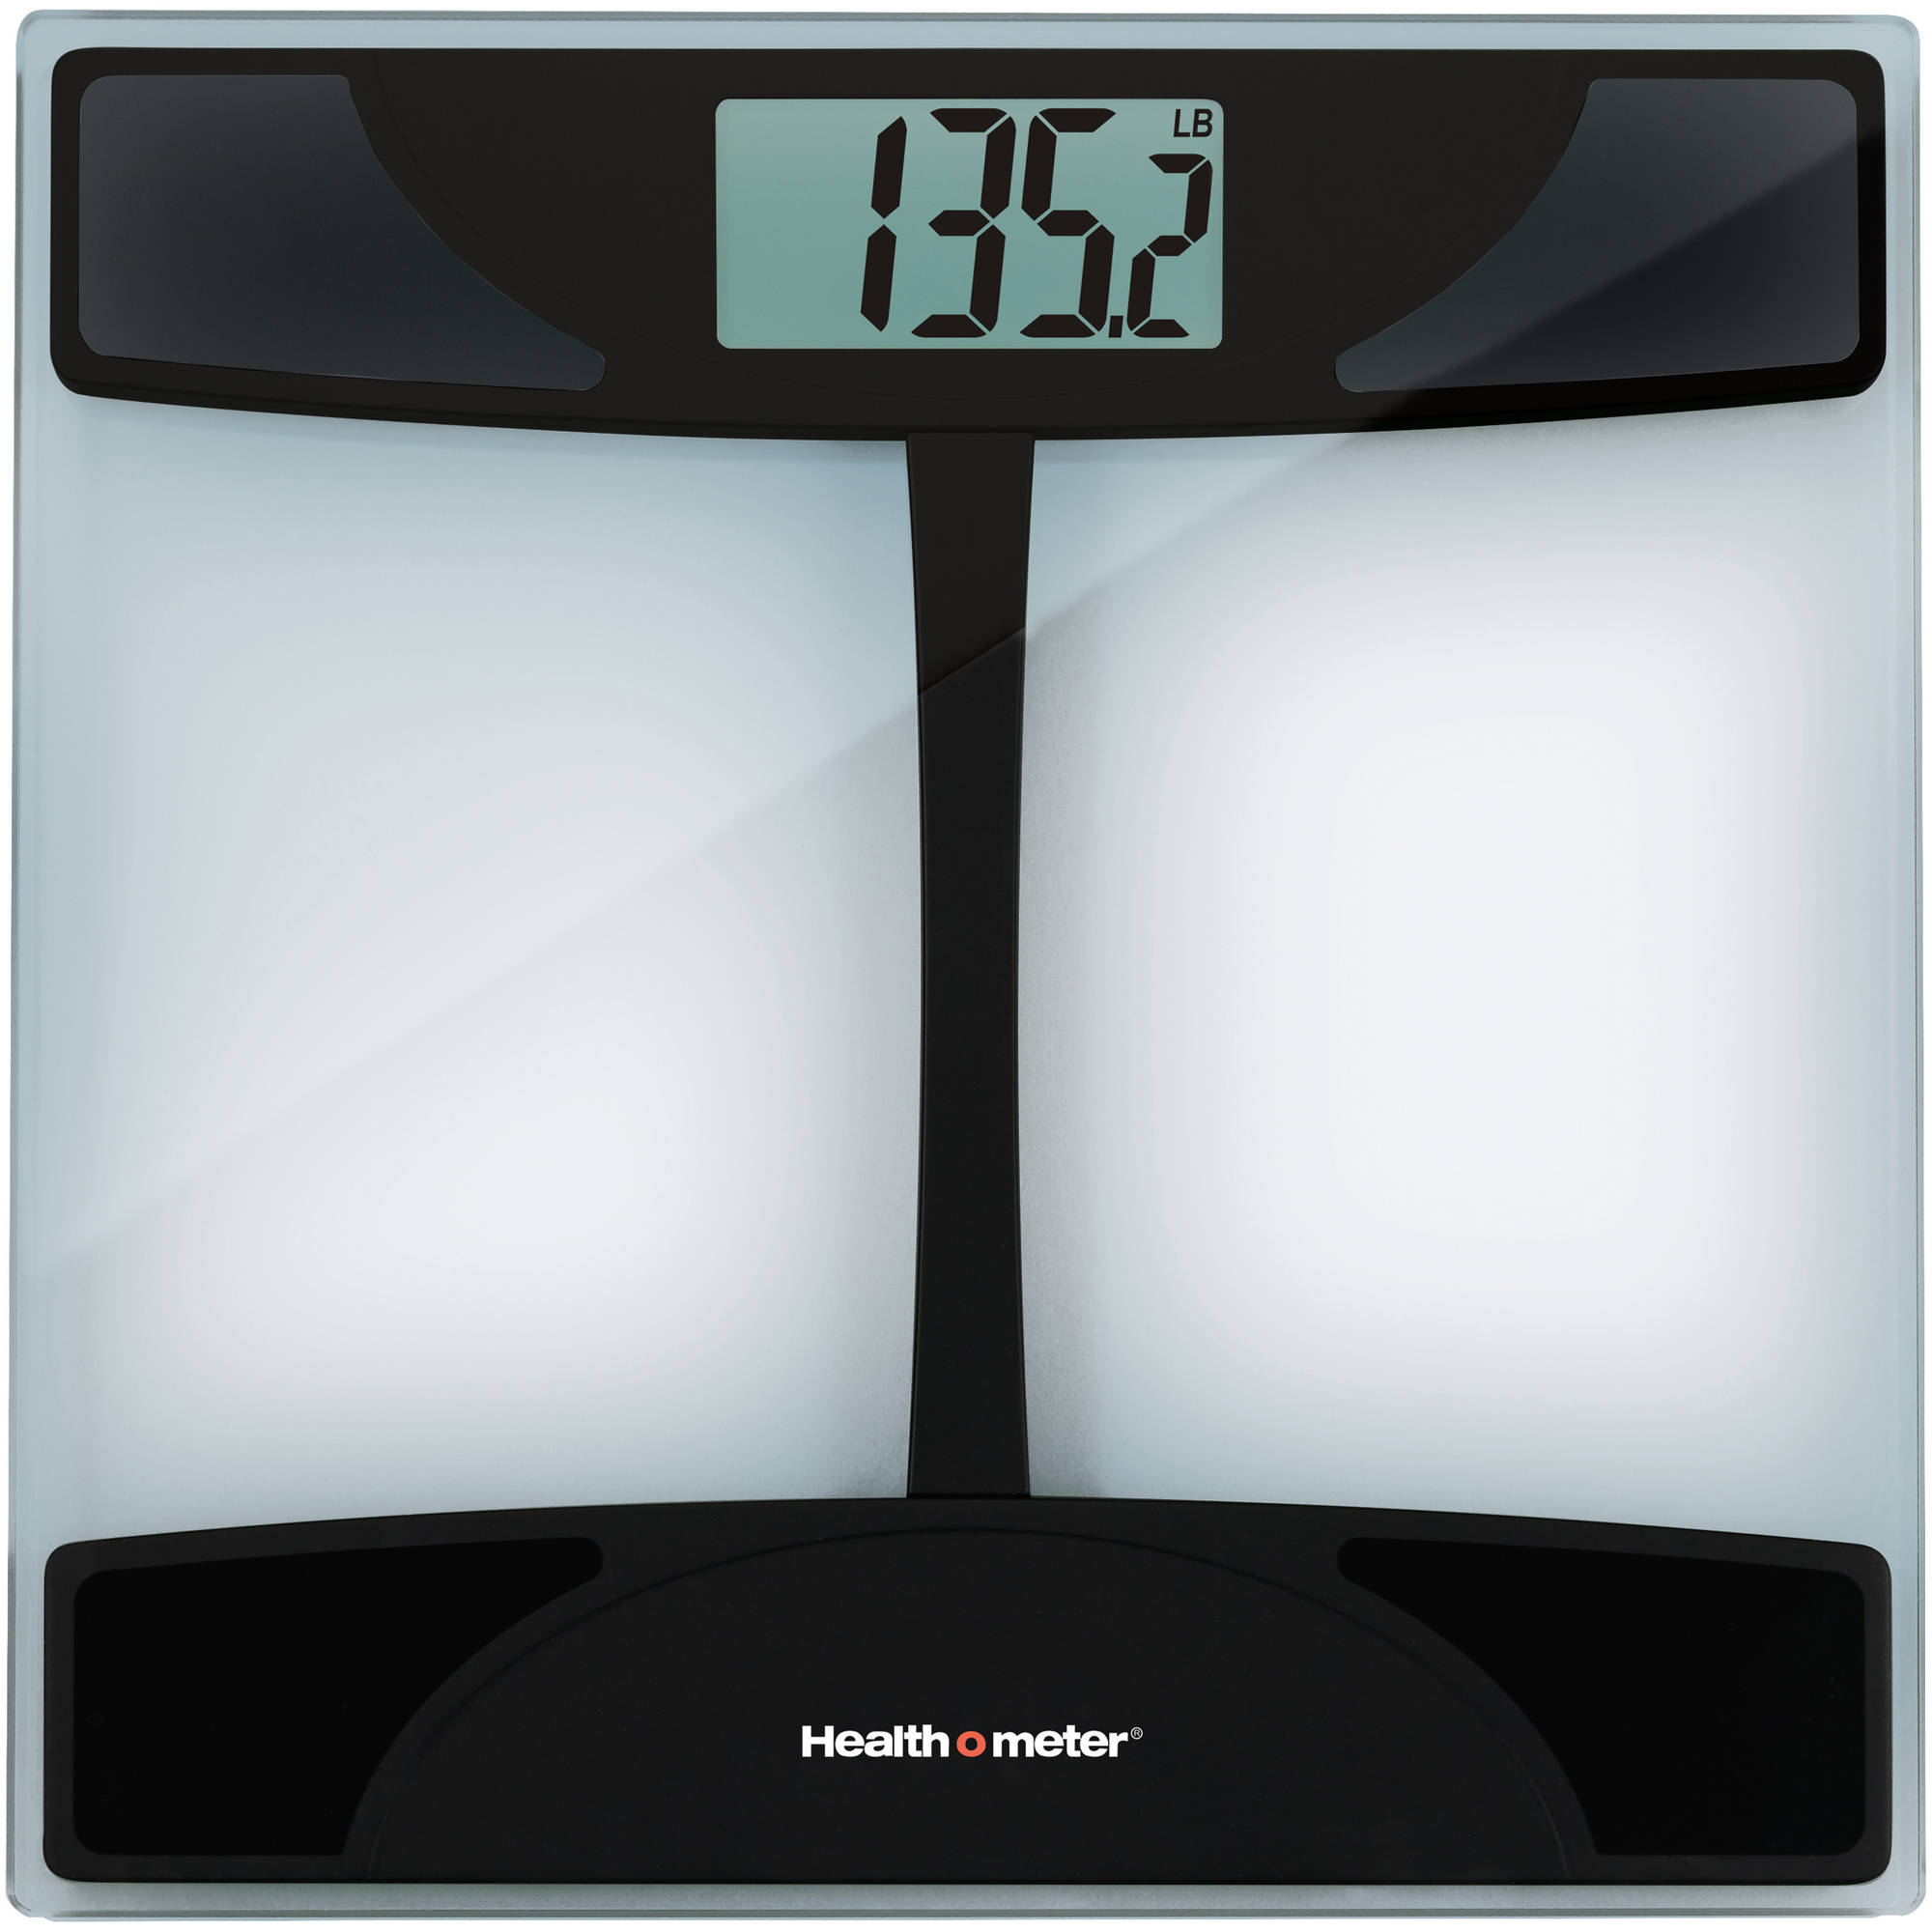 Health o meter Digital Glass Weight Tracking Scale, HDM651DQ-63